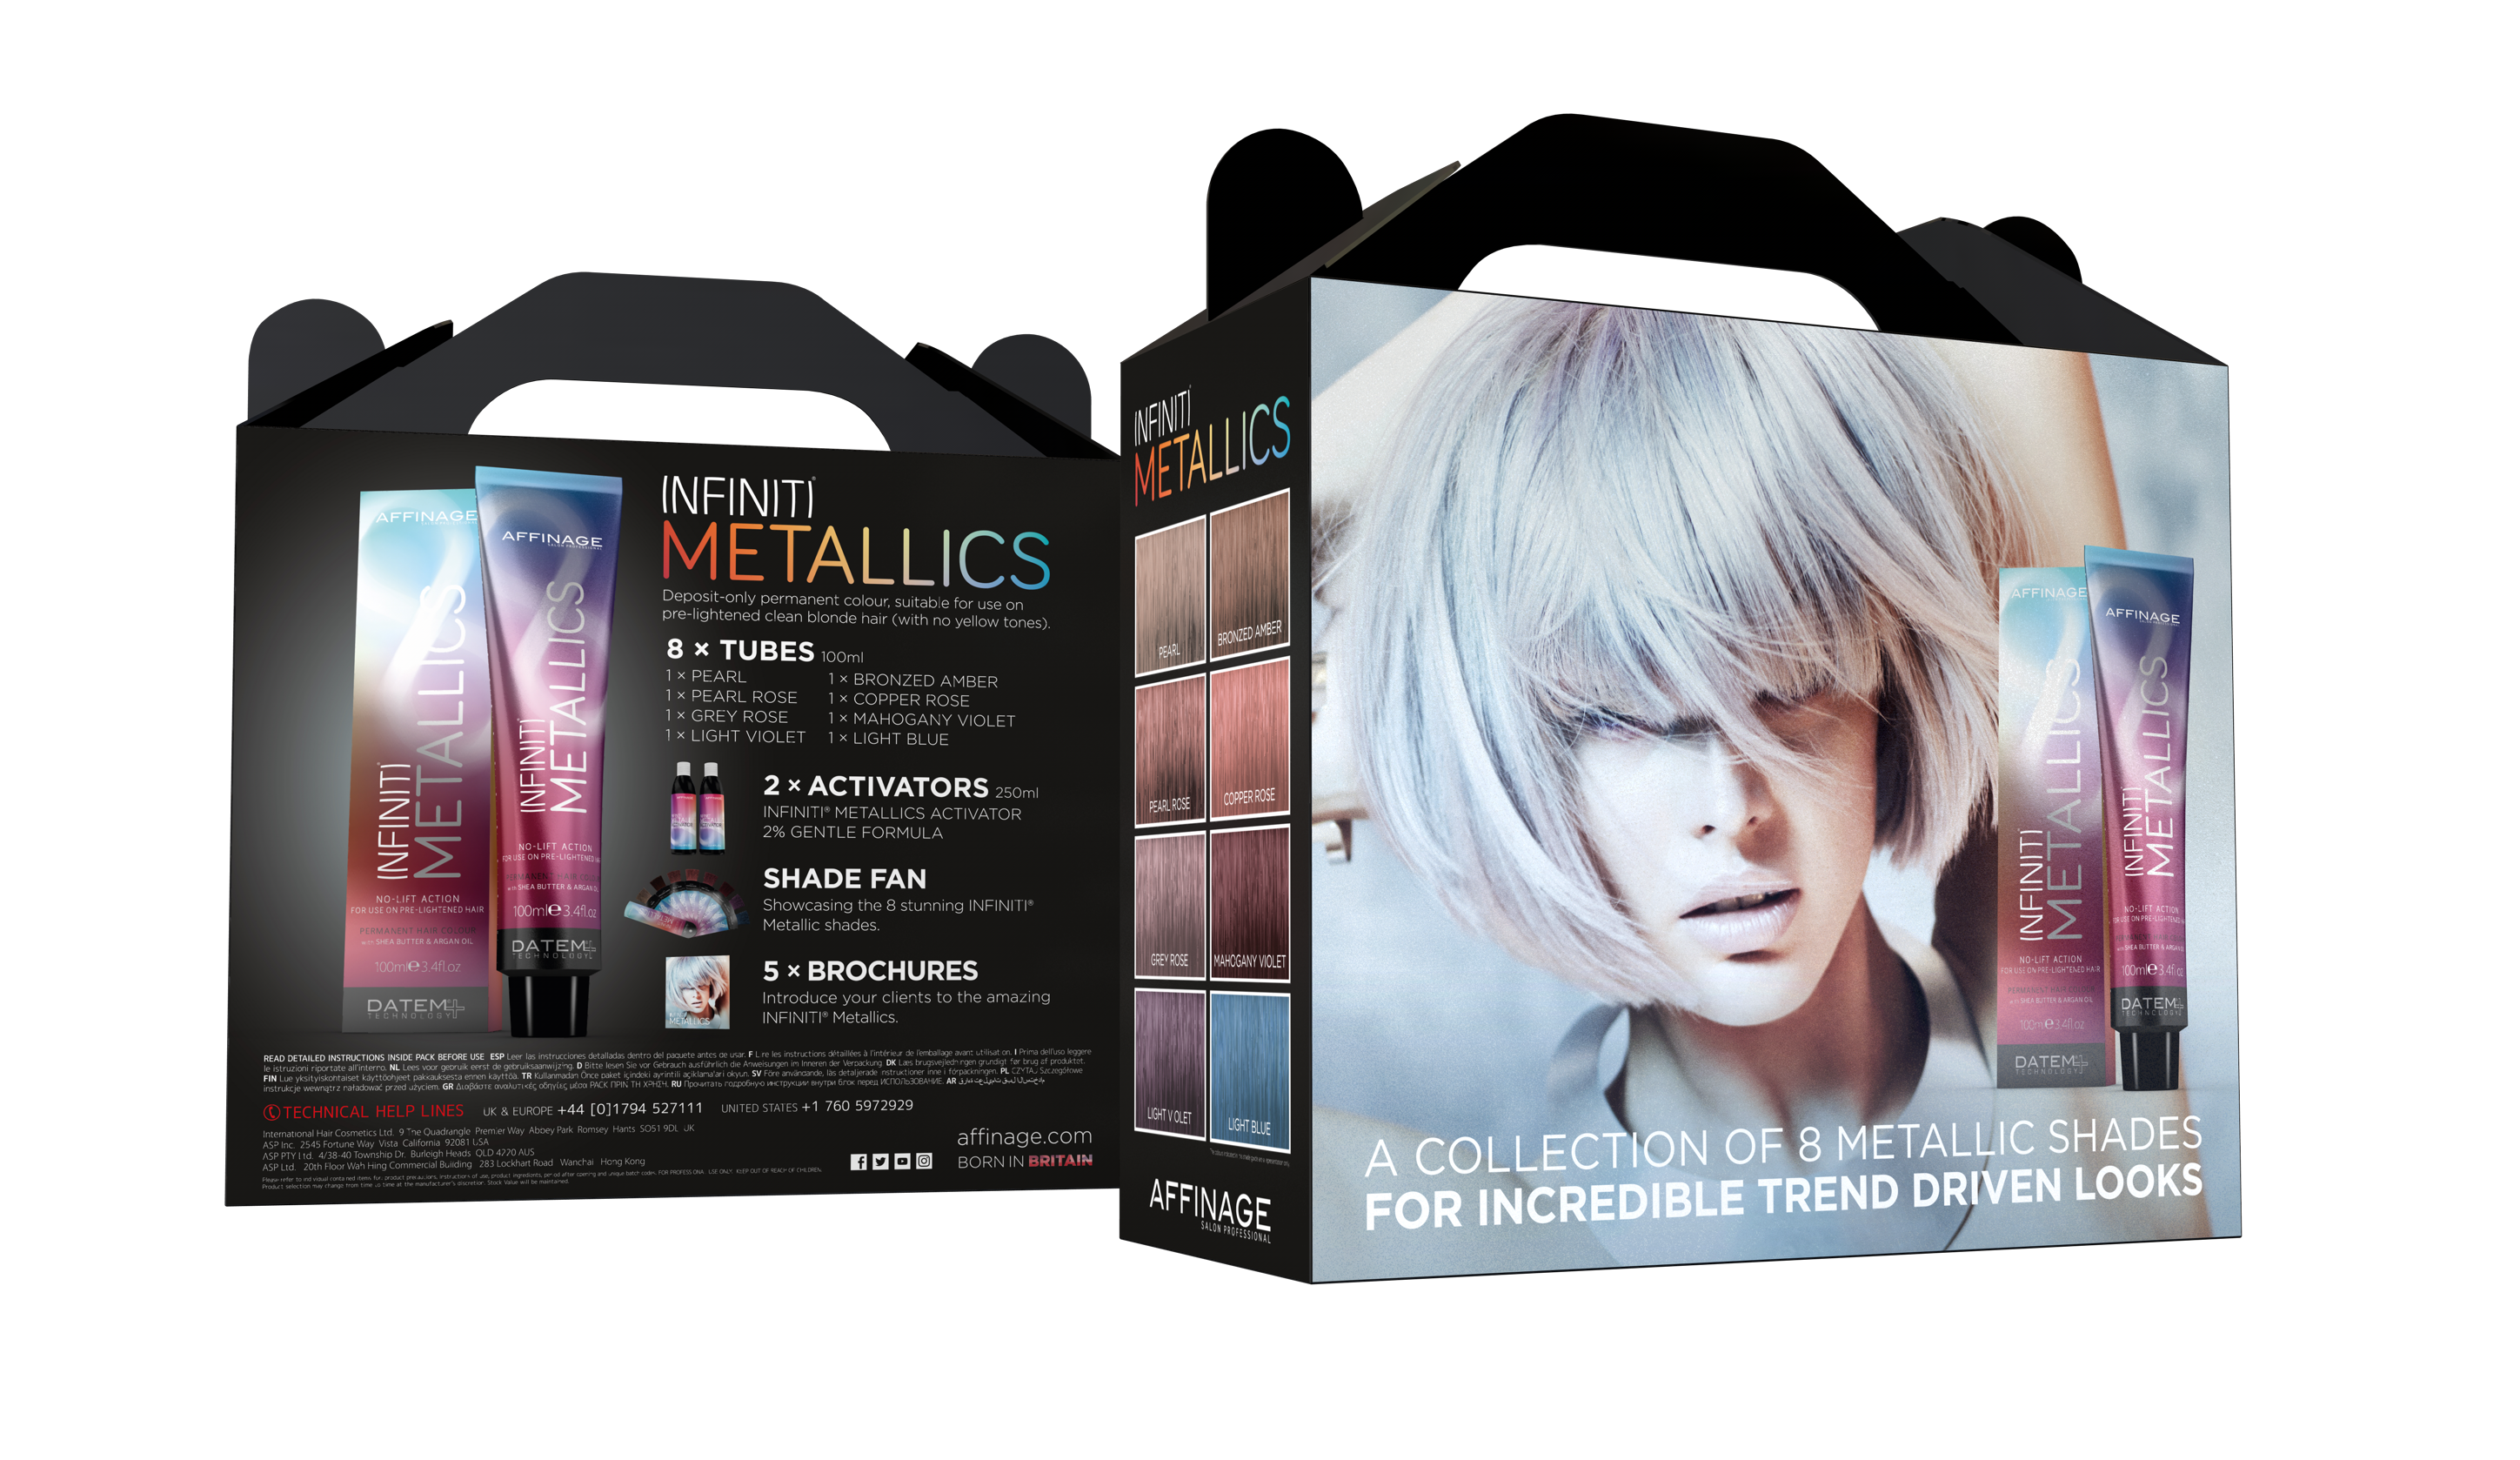 The Metallics collection intro kit. Photo courtesy of Affinage Salon Professional.